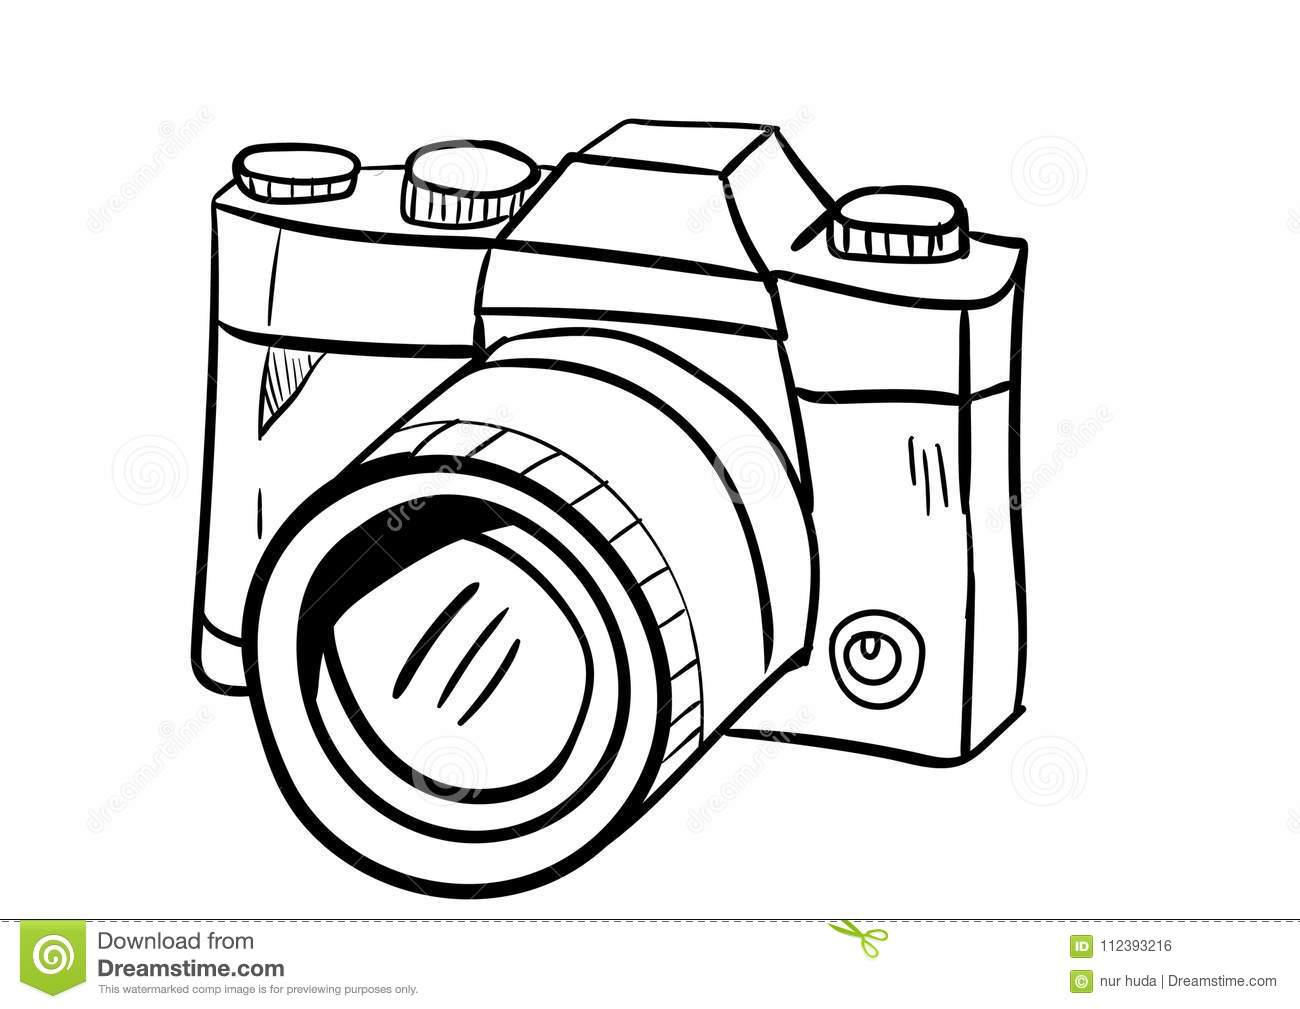 Camera Icon Vector With Doodle Style Stock Vector Illustration Of Digital Frame 112393216